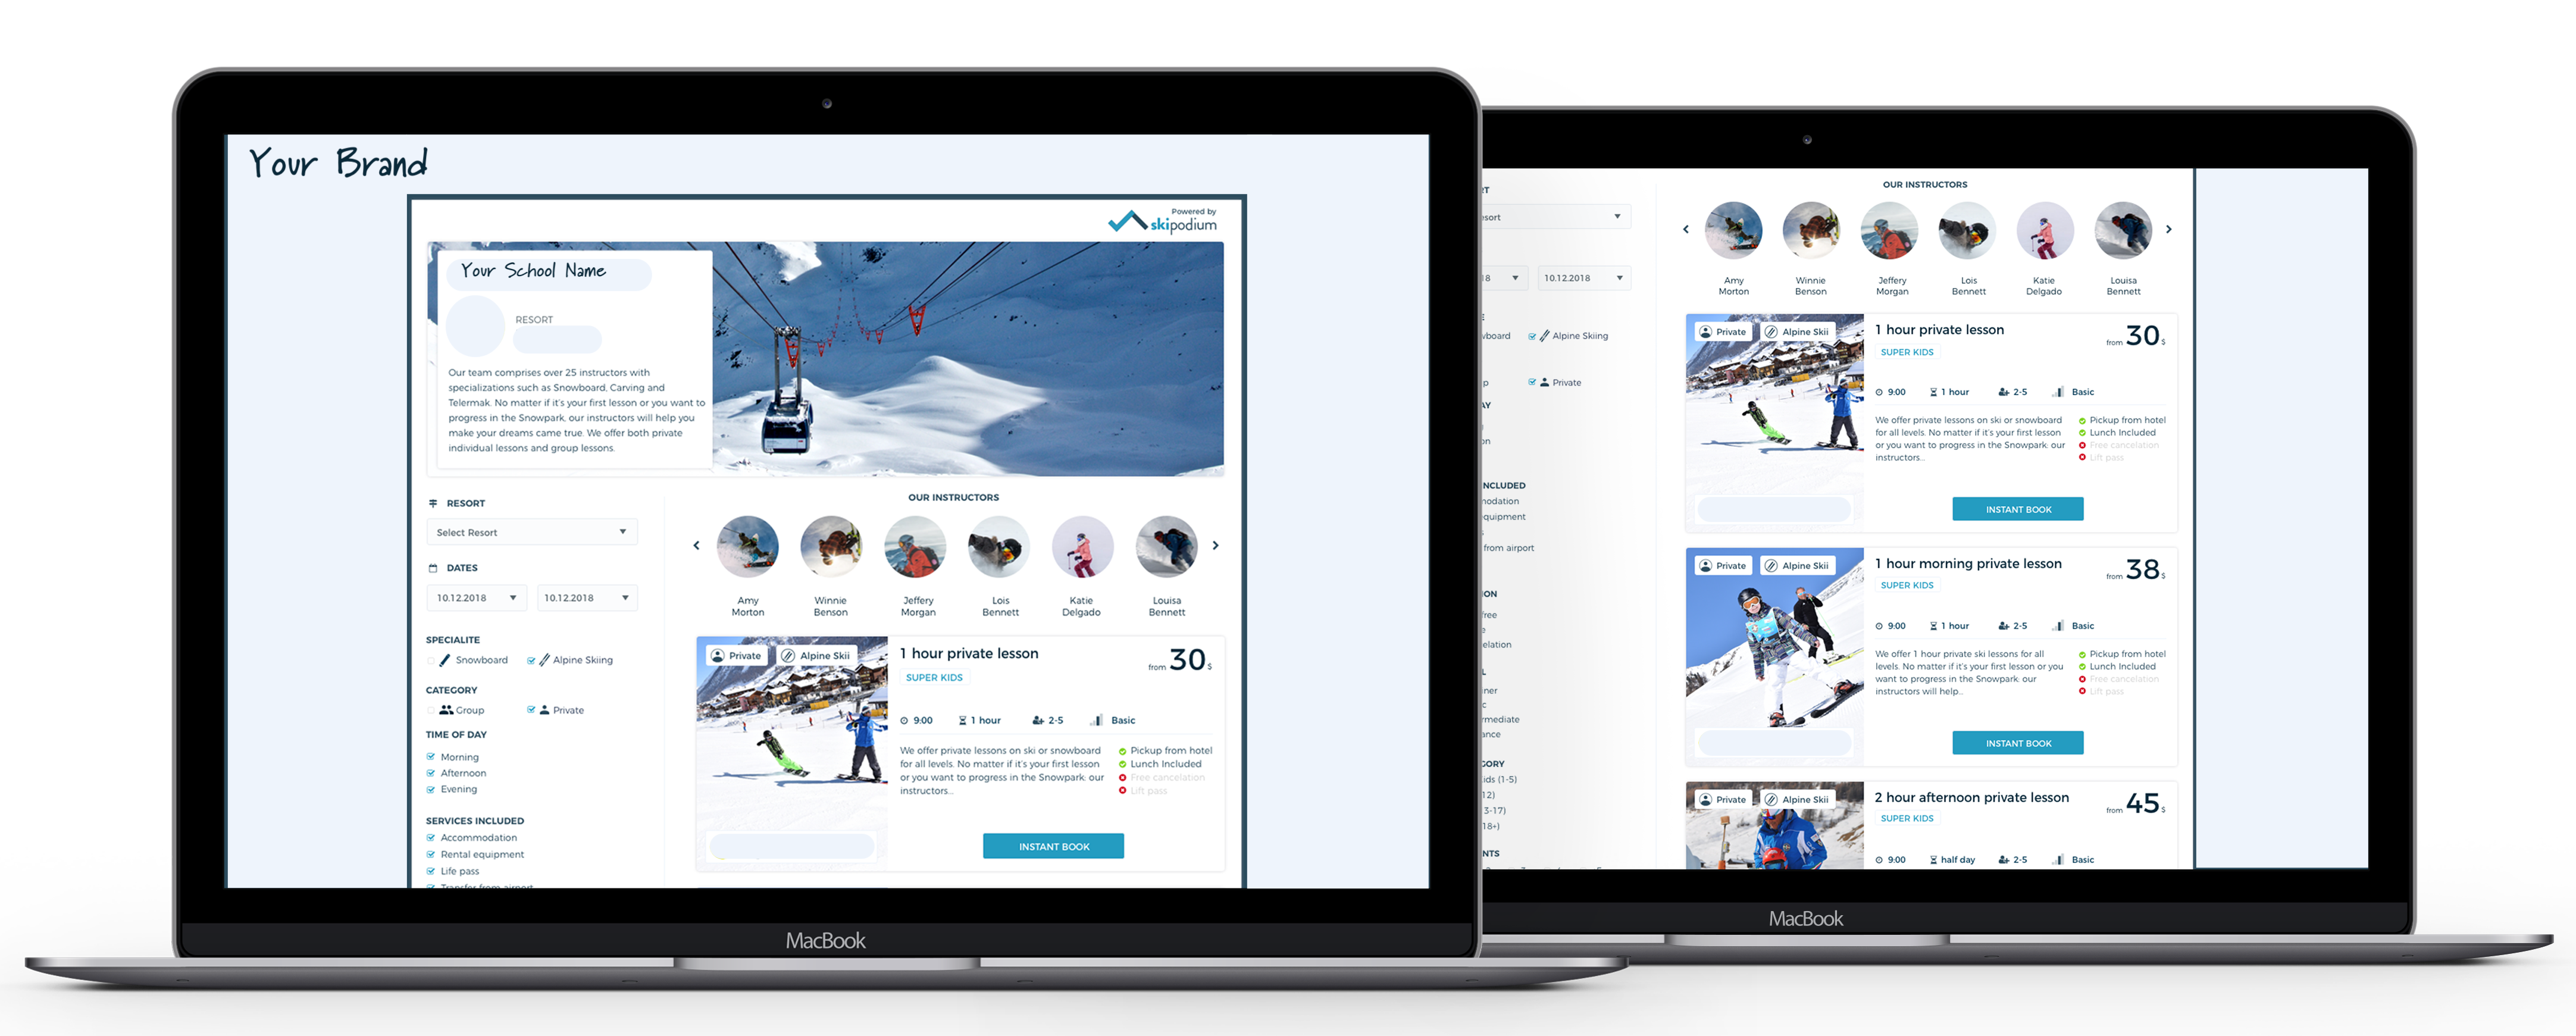 Whitelabel, Skipodium, Online Sales, Management Software